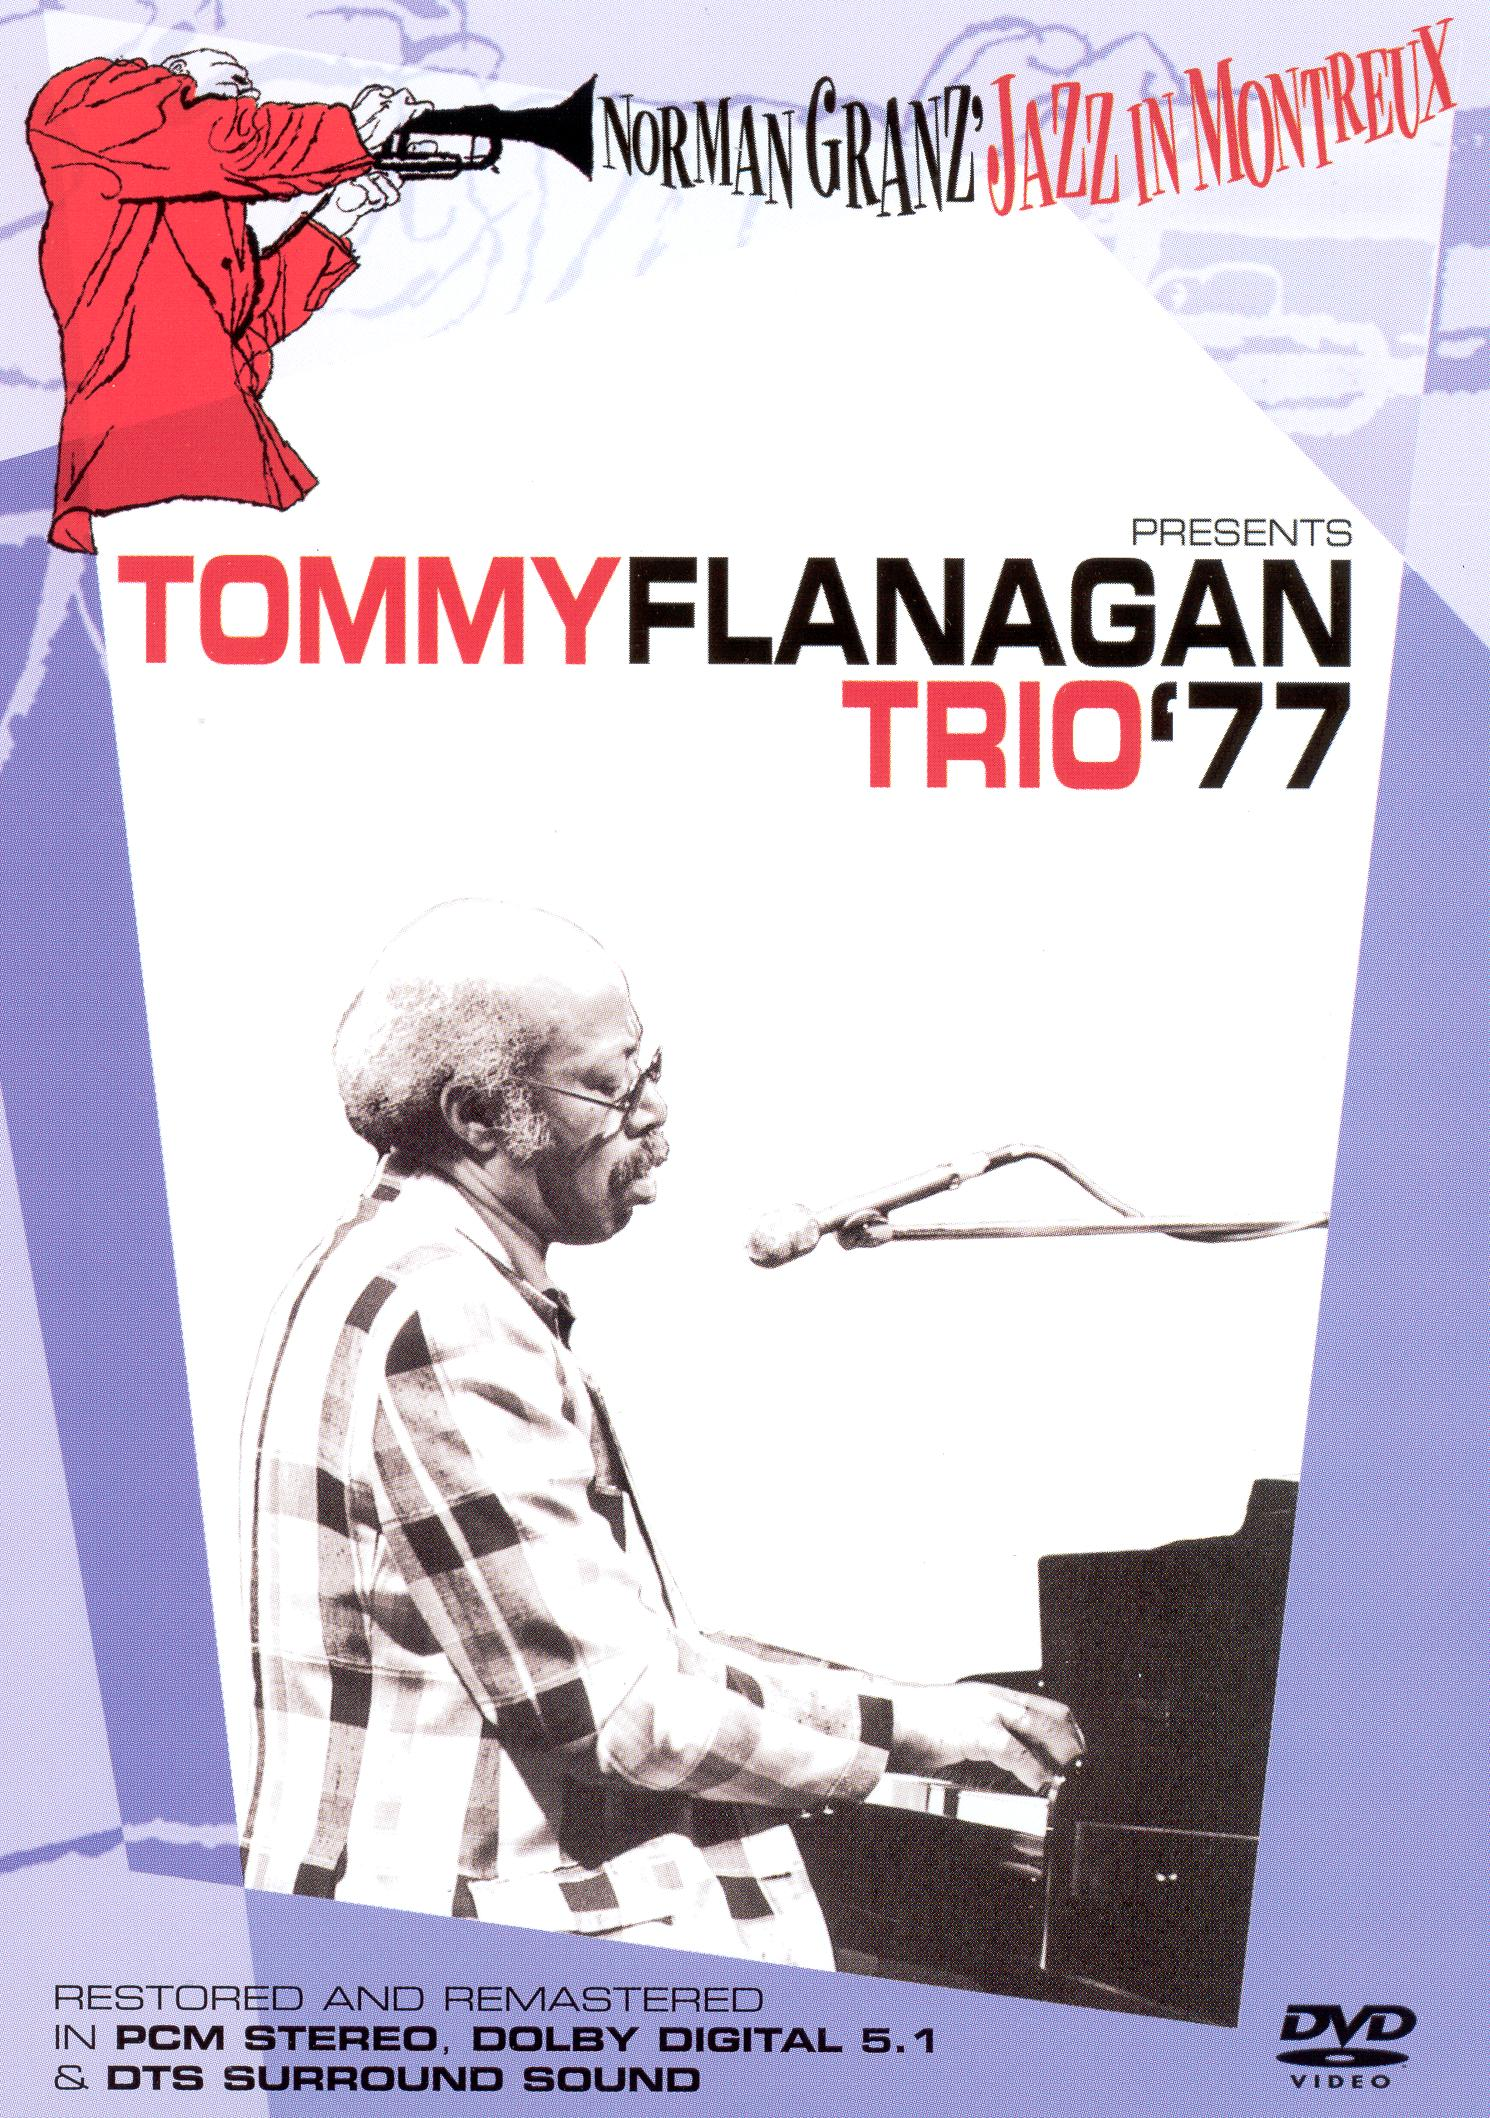 Norman Granz' Jazz in Montreux: Tommy Flanagan Trio '77